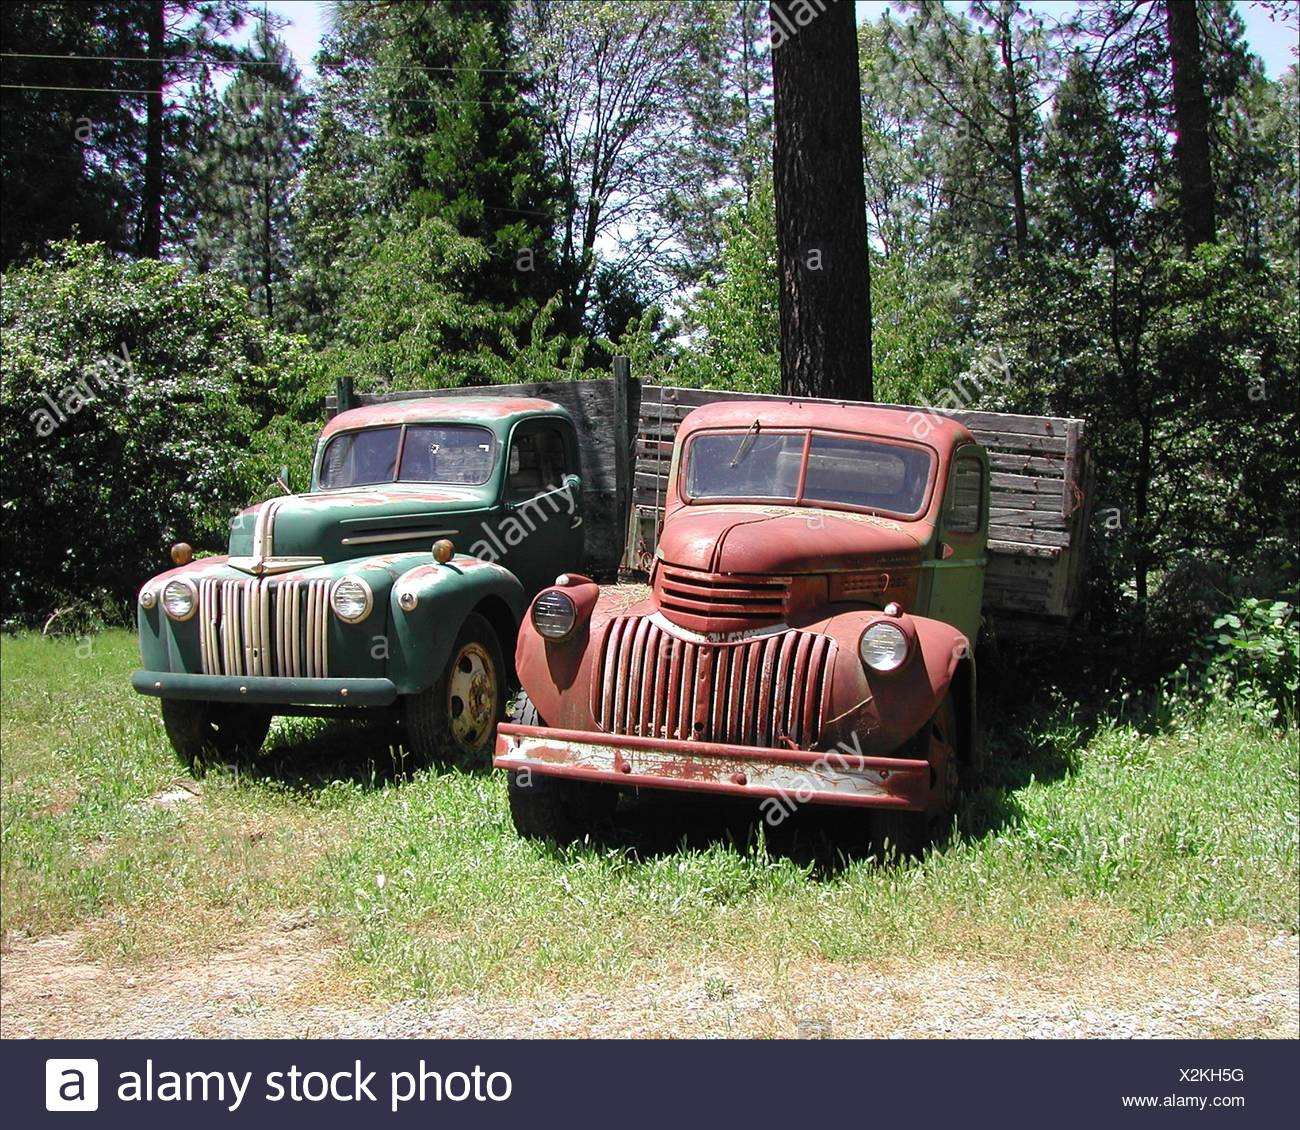 Old Vehicles Stock Photos & Old Vehicles Stock Images - Alamy